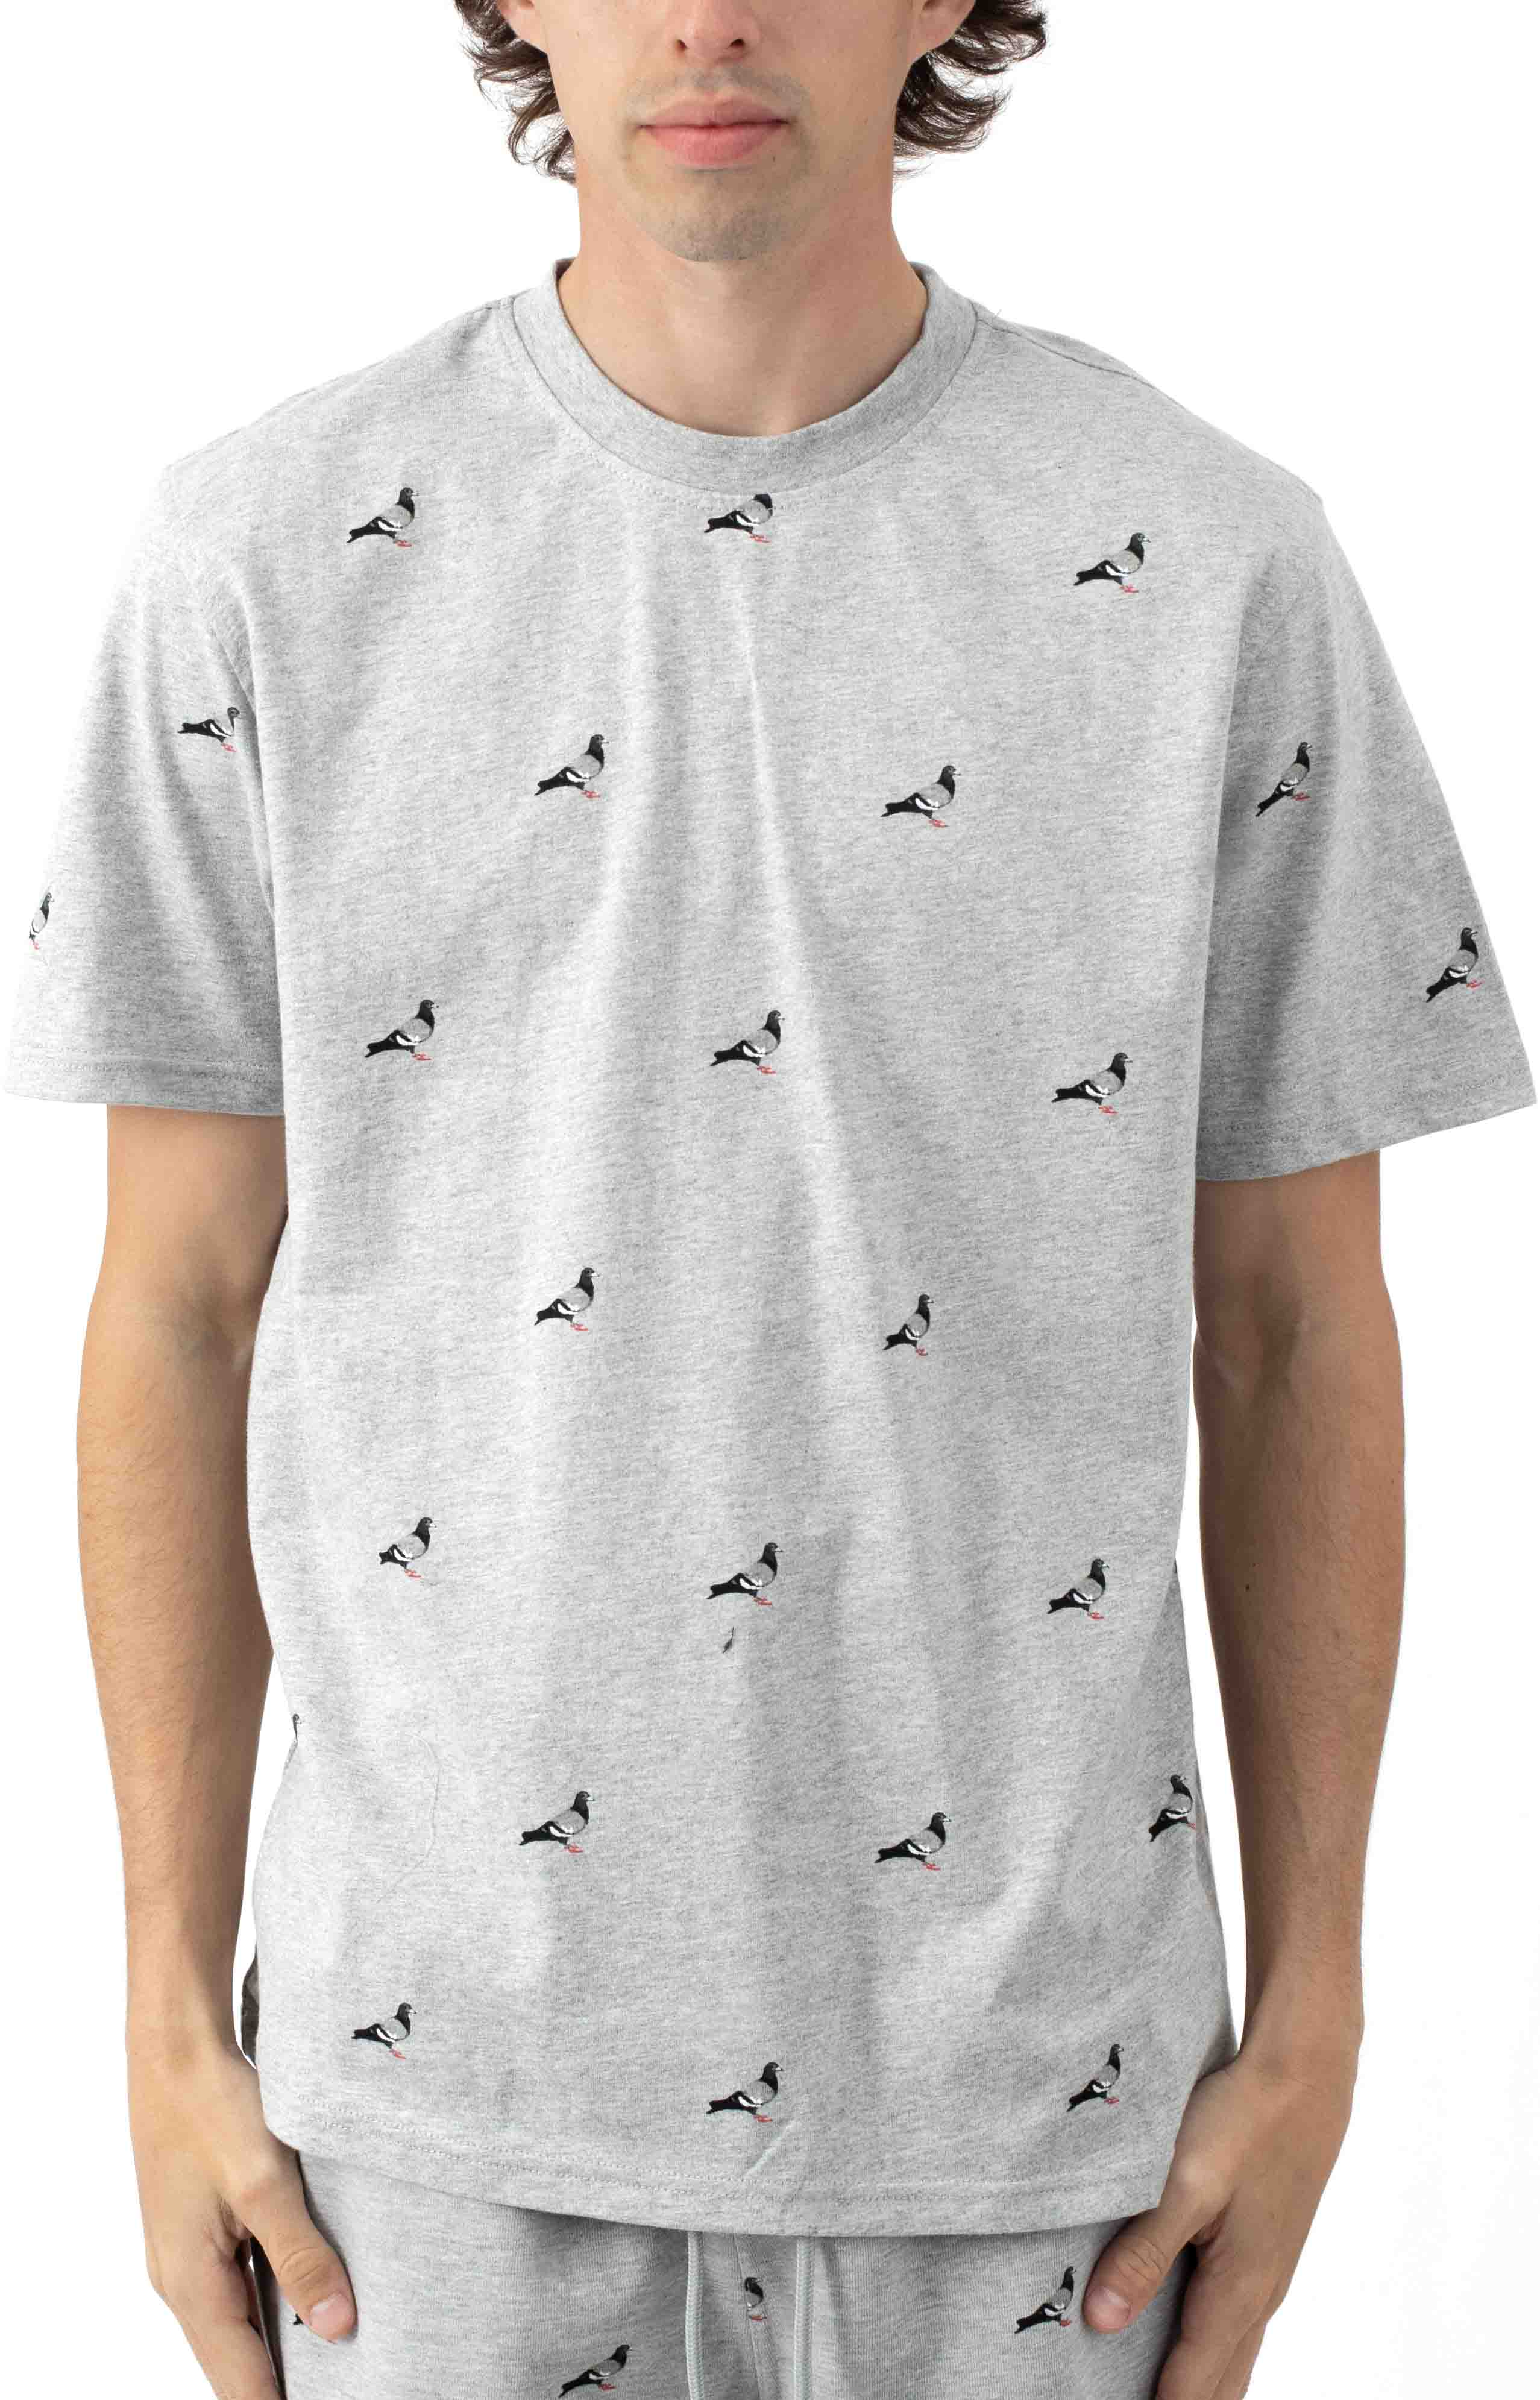 All Over Pigeon T-Shirt - Heather